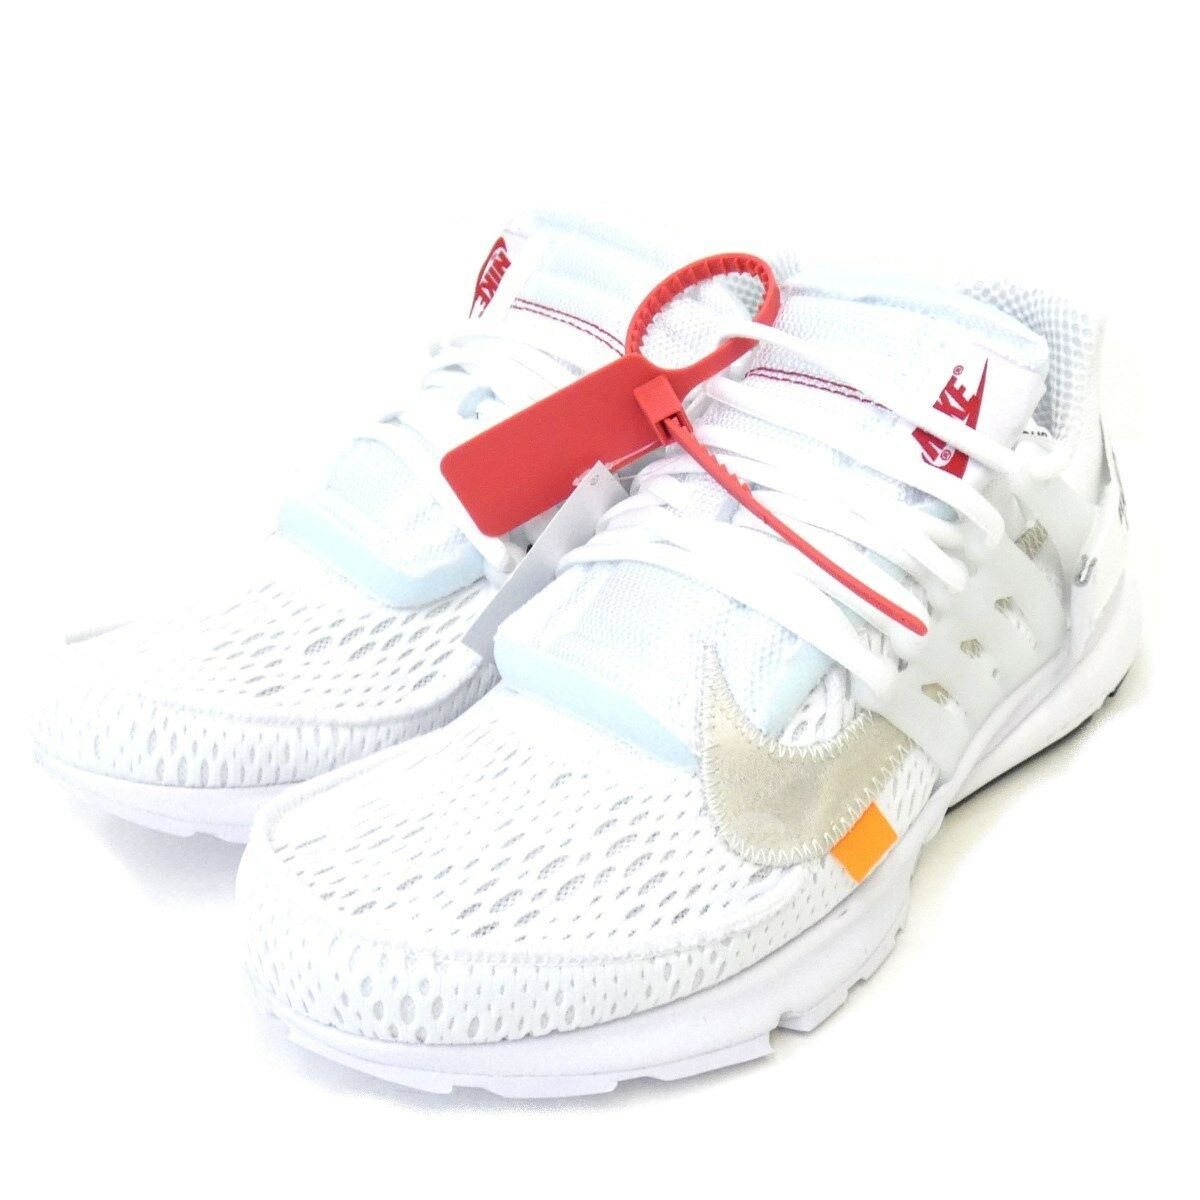 NIKE OFF WHITE AA3830100THE 10 AIR PRESTO low-cut sneakers size 27cm 170918 (K19